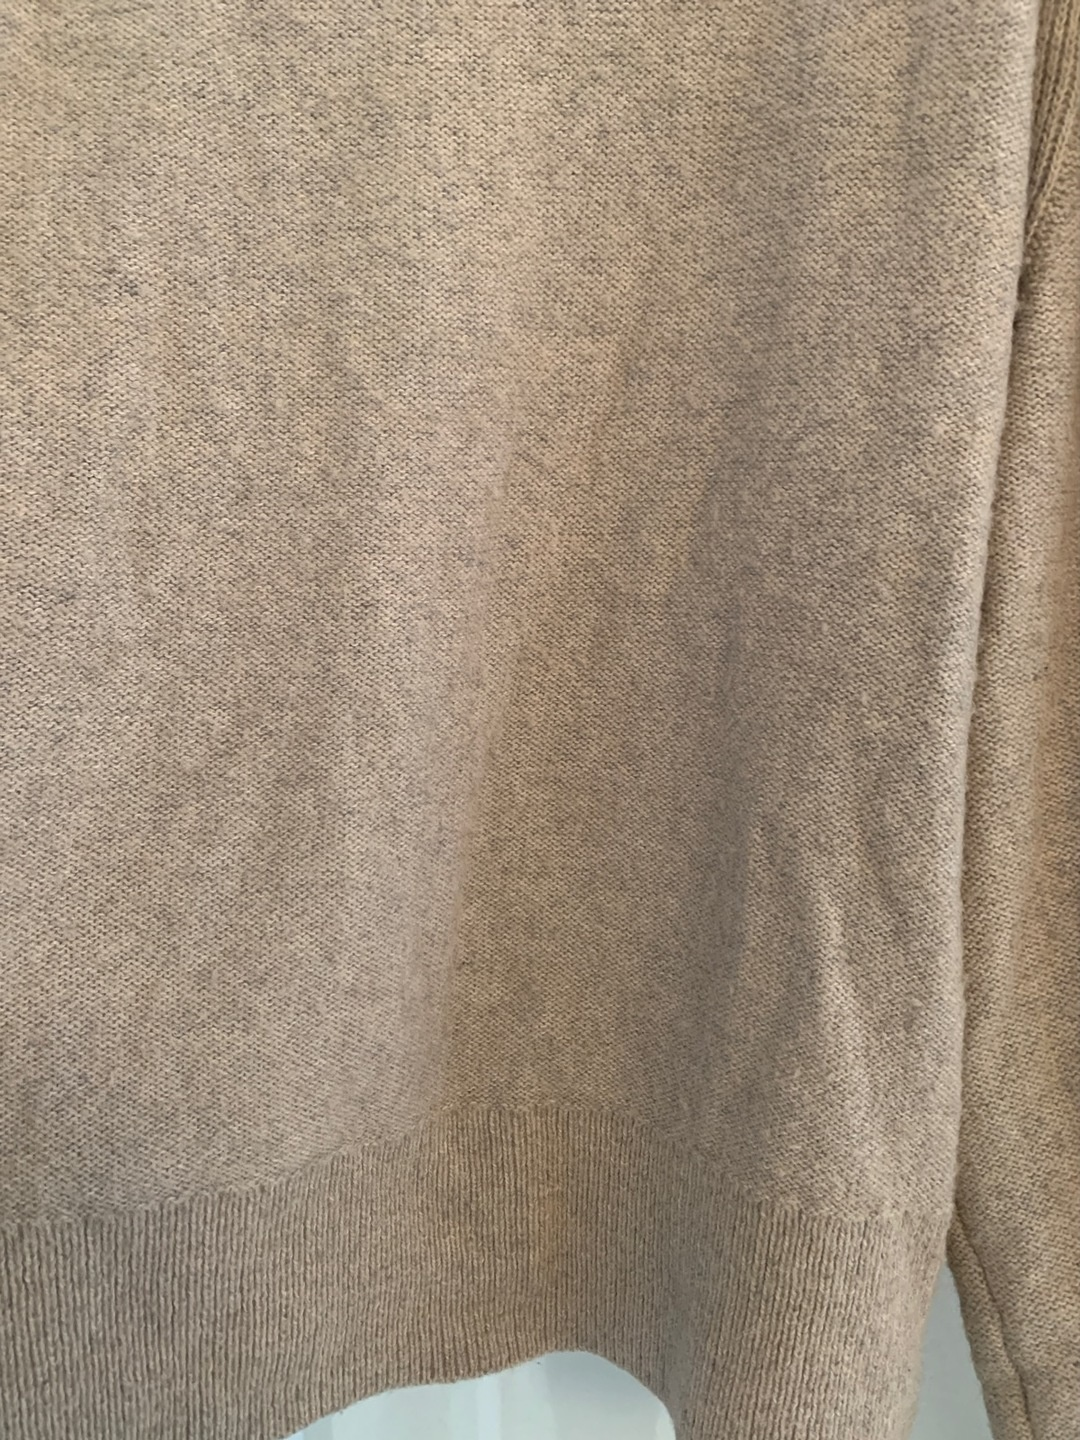 Women's jumpers & cardigans - COS photo 4